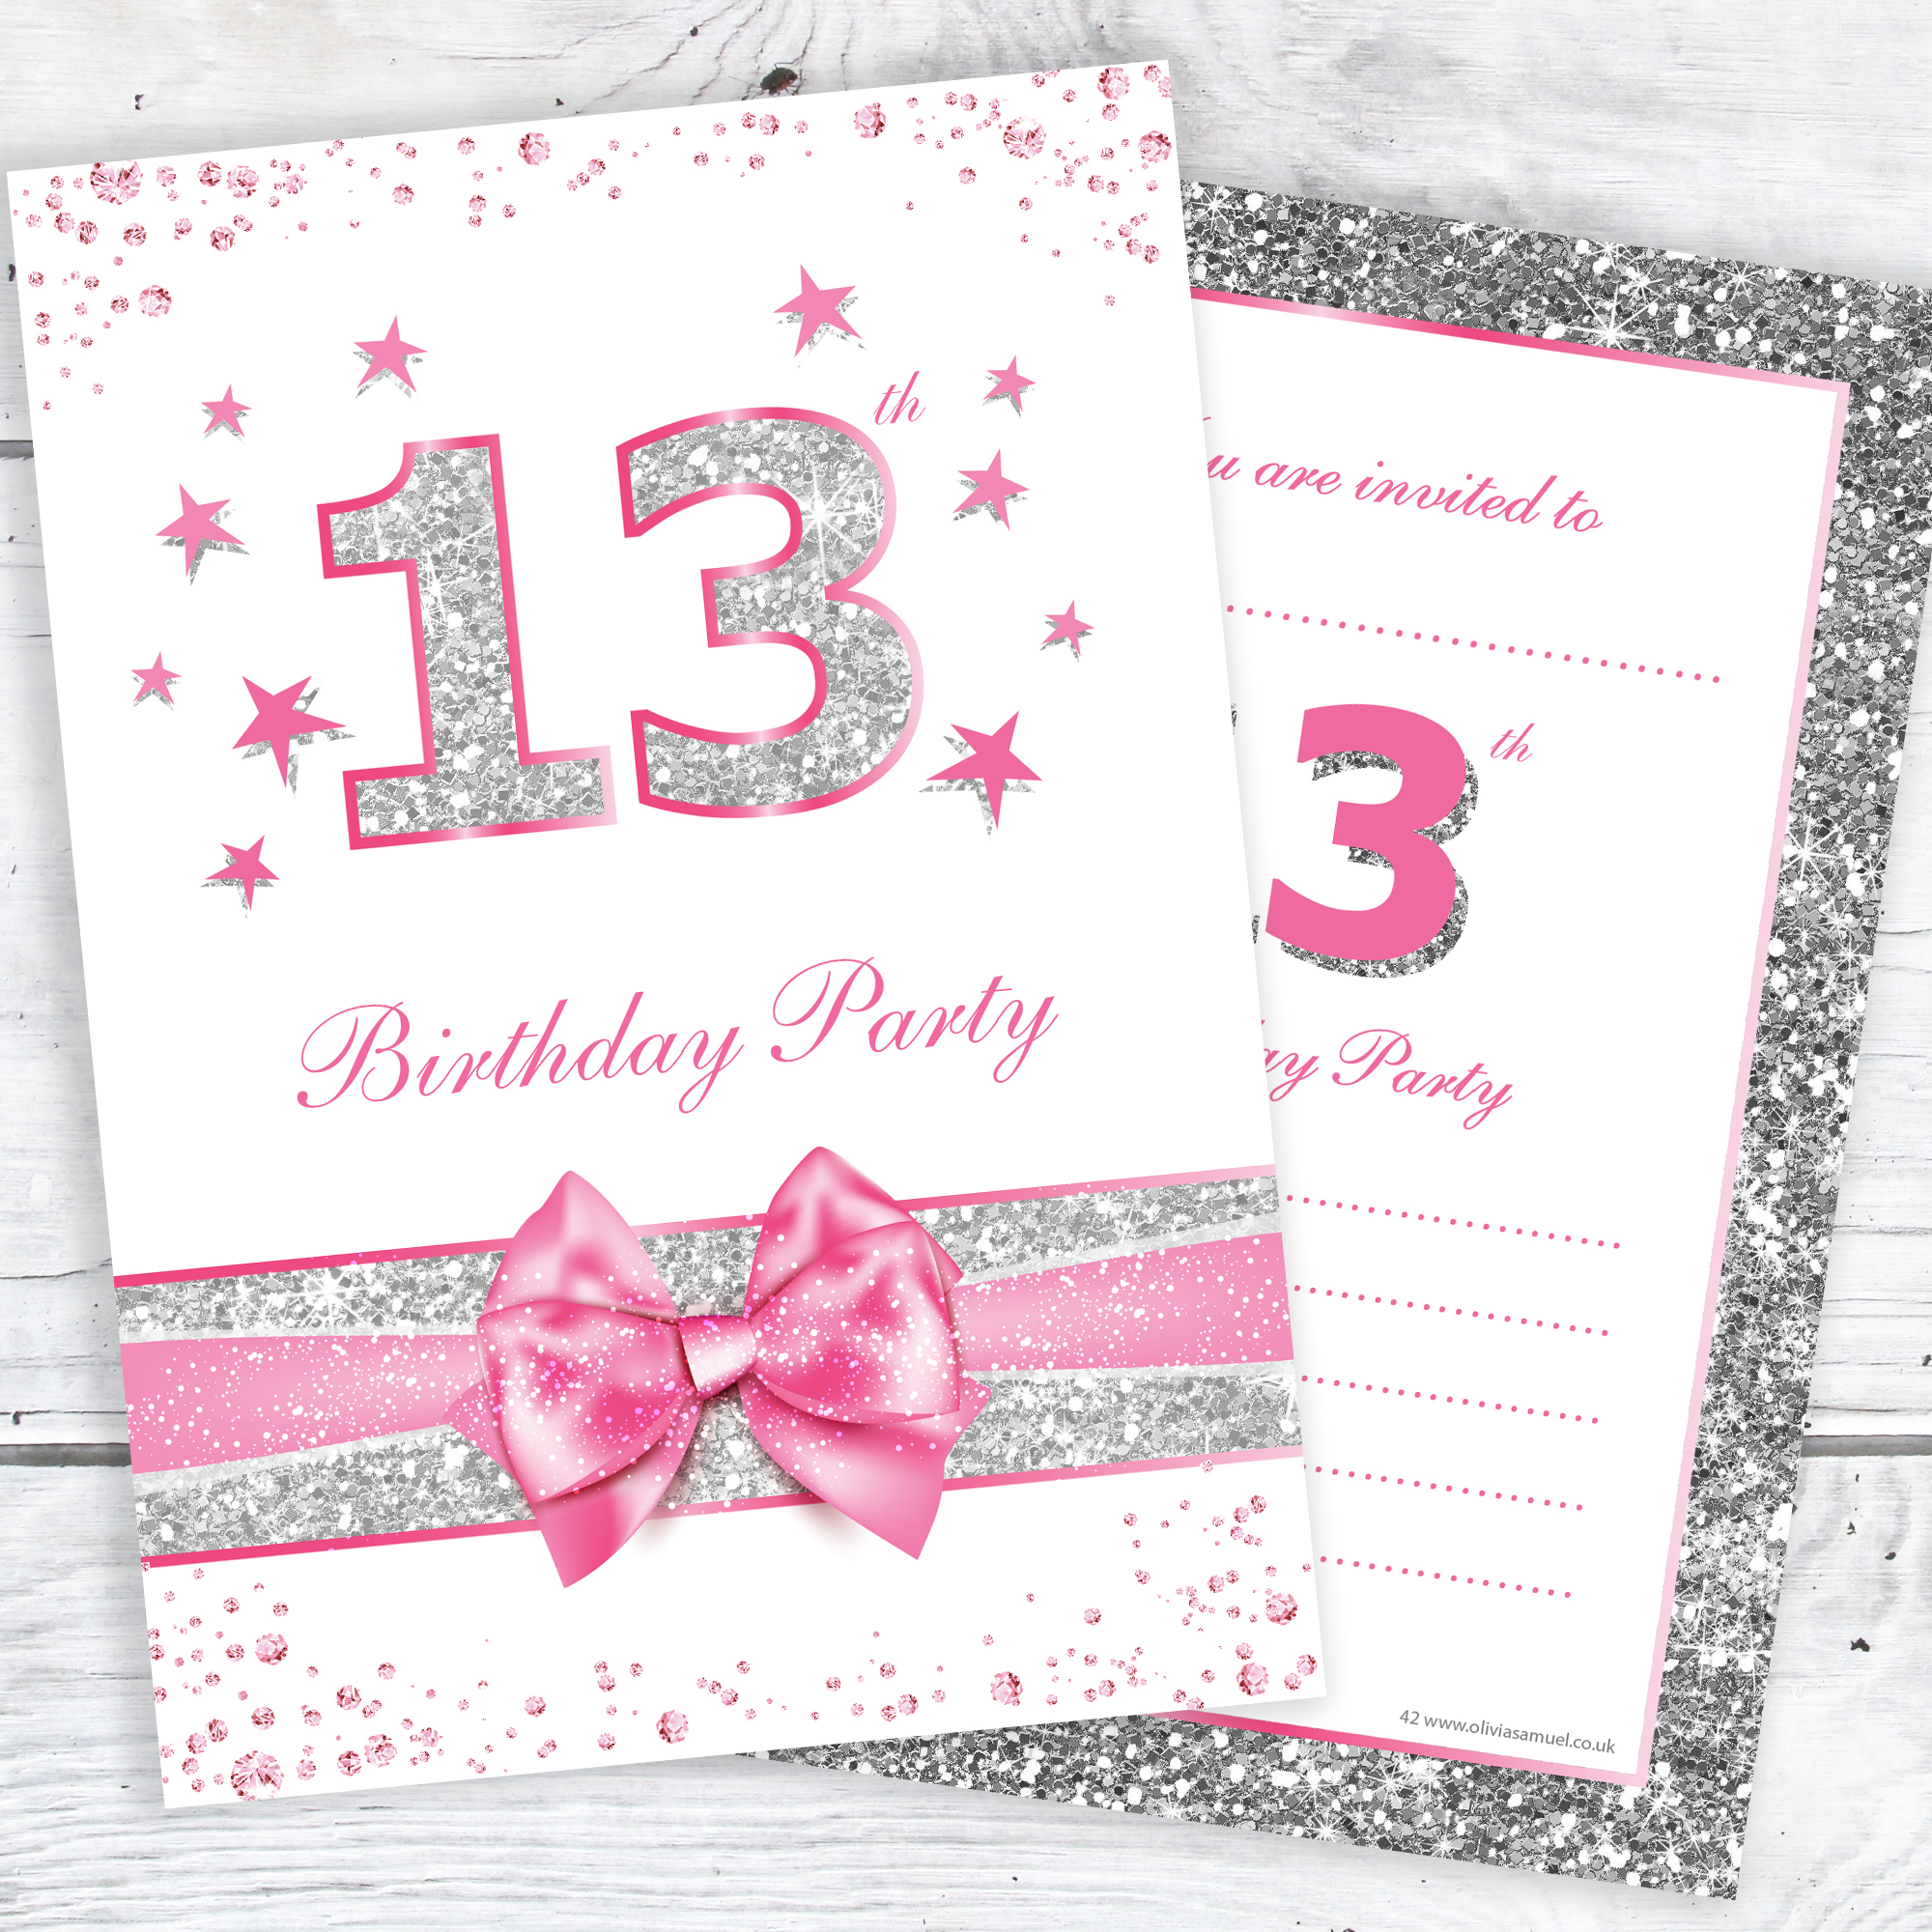 13th Birthday Party Invitations Pink Sparkly Design And Photo Effect Silver Glitter A6 Postcard Size With Envelopes Pack Of 10